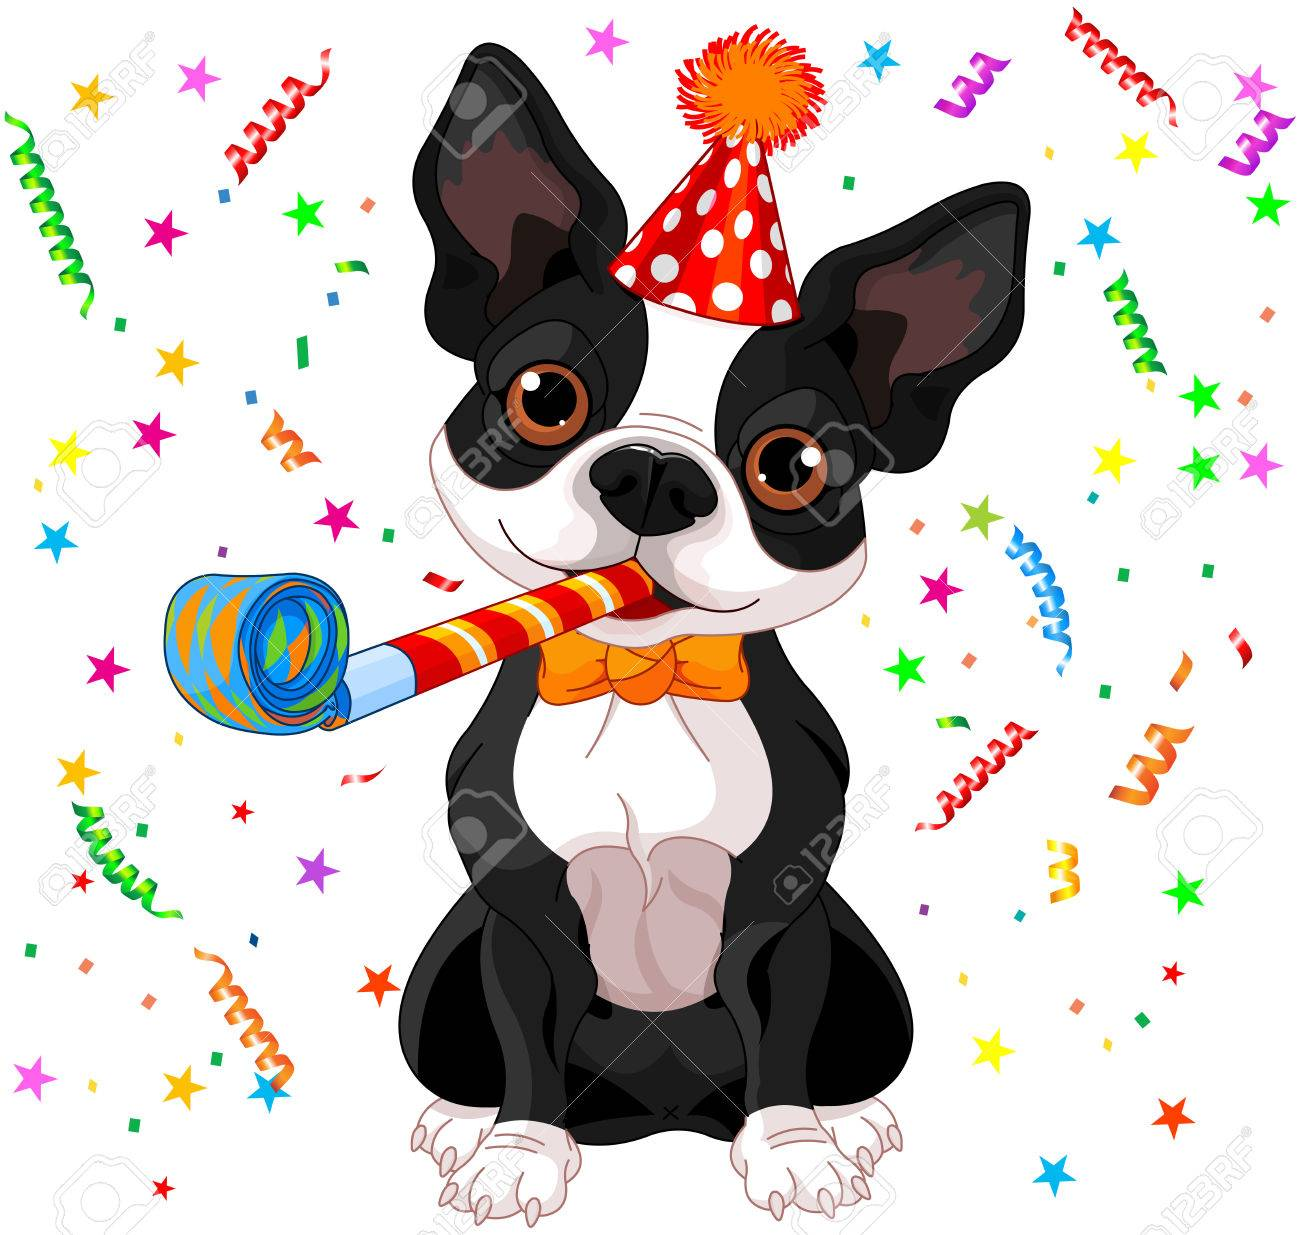 Politique, législation et animaux 35588778-illustration-of-cute-boston-terrier-celebrating